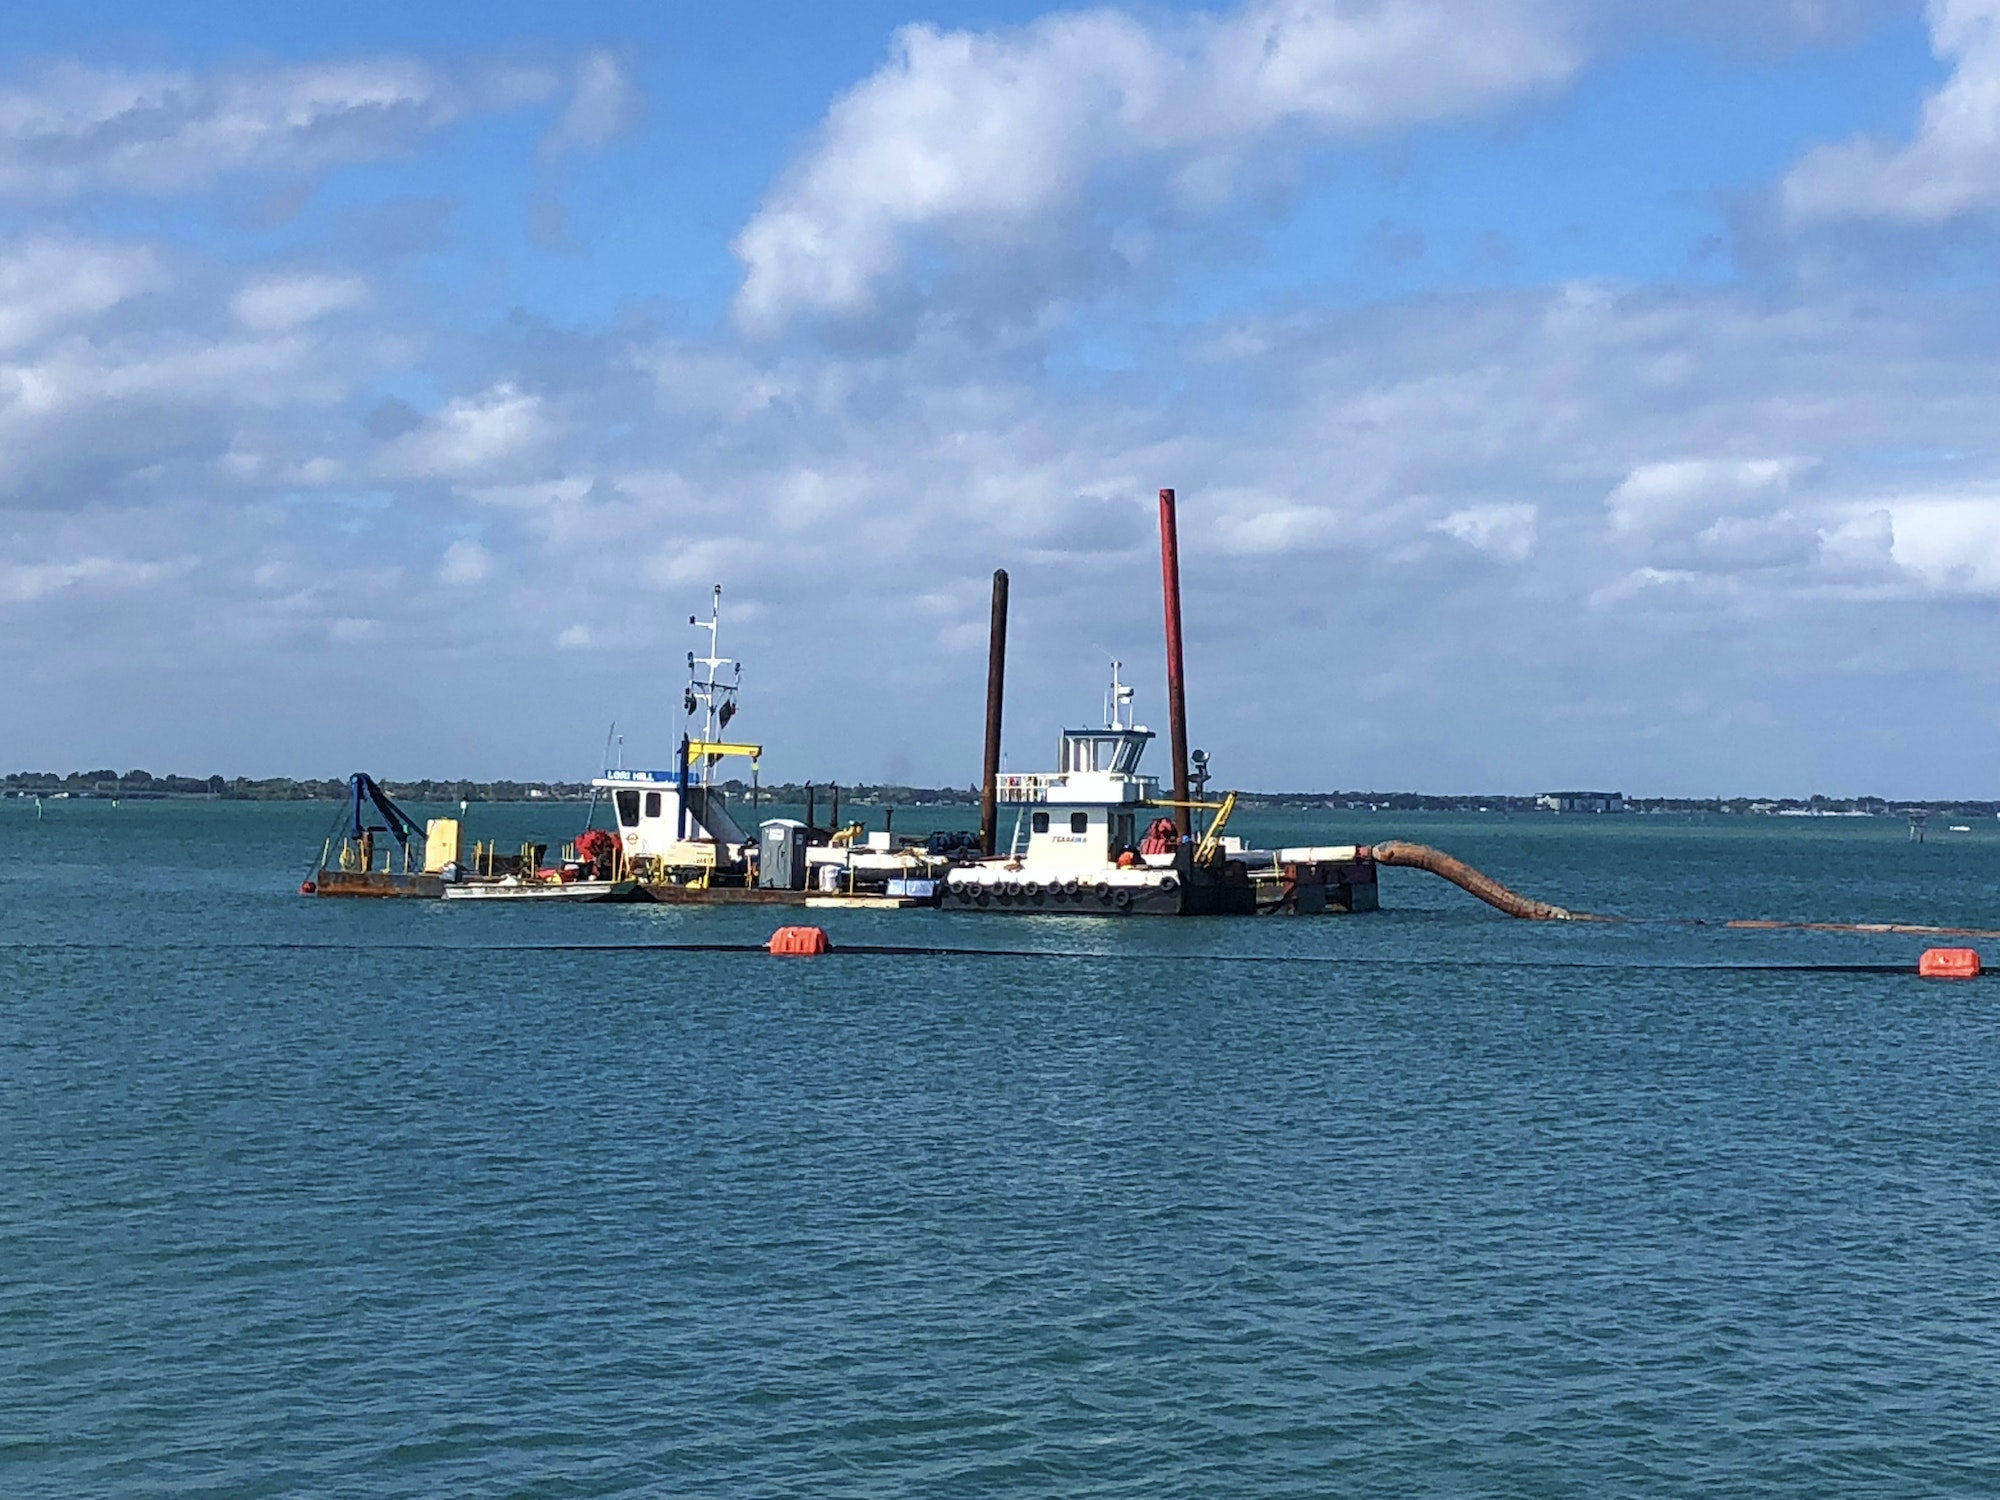 dredge boat floating in the Indian River Lagoon